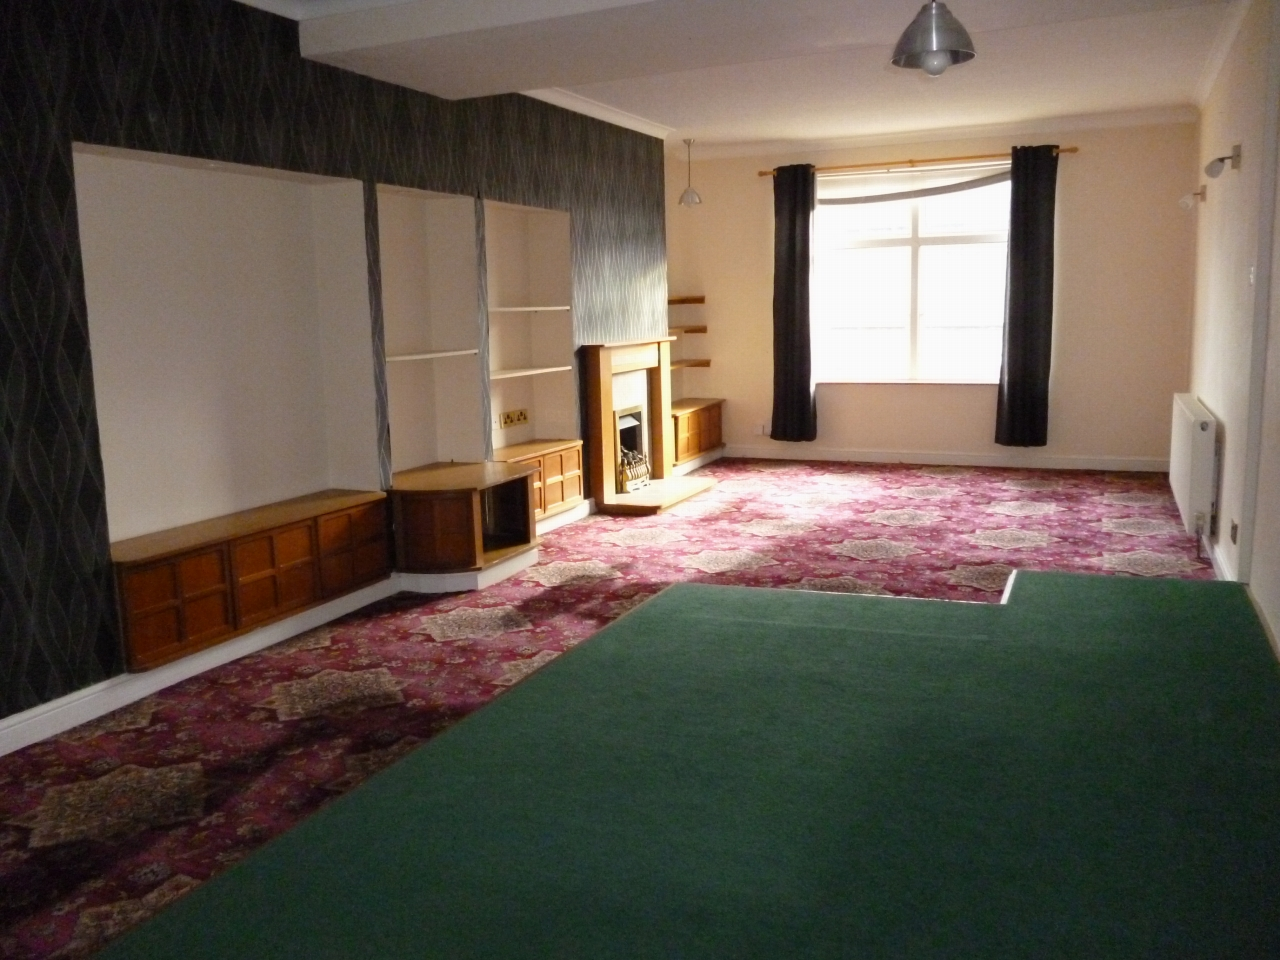 3 bedroom apartment flat/apartment SSTC in Leicester - Photograph 4.